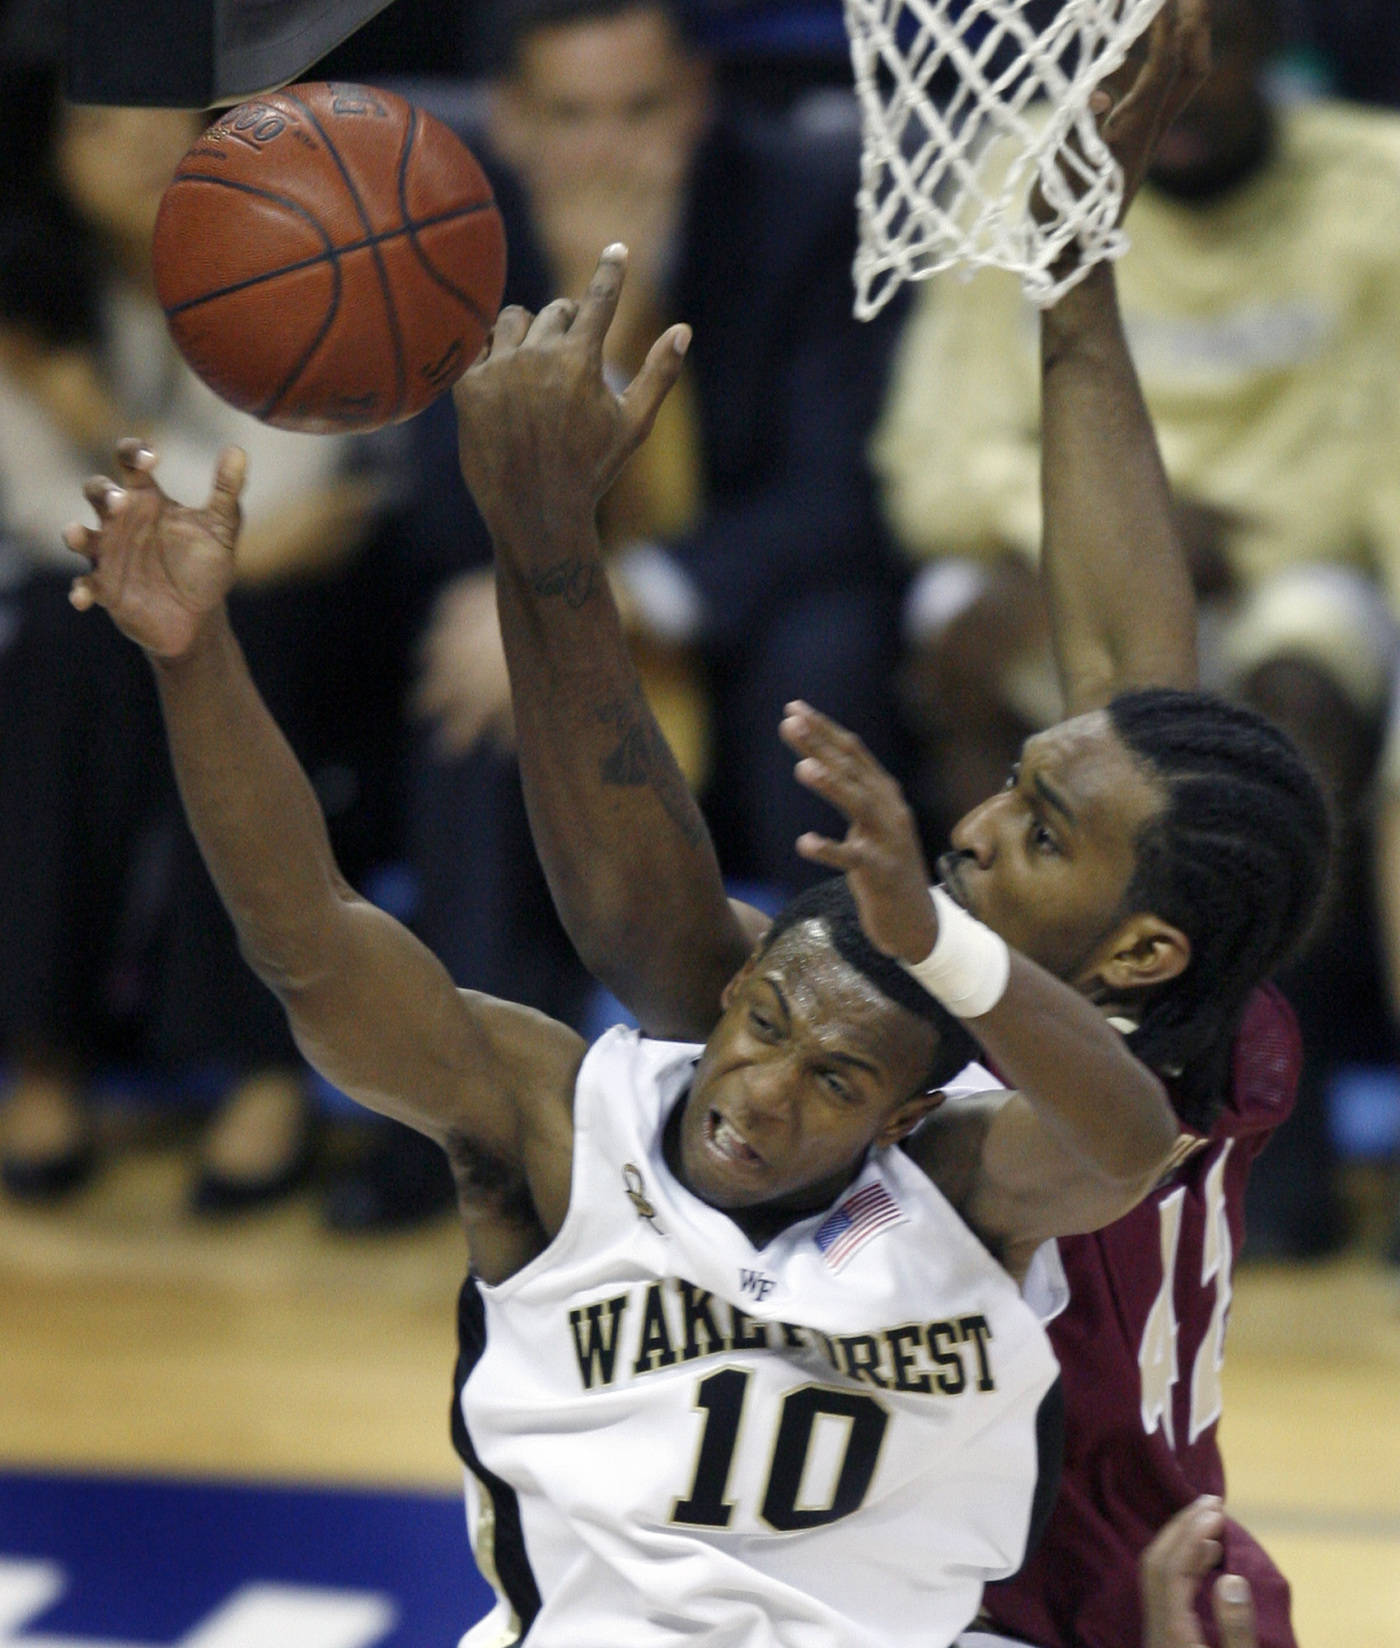 Wake Forest's Ishmael Smith and Ryan Reid fight for a rebound in the first half. (AP Photo/Rick Havner)